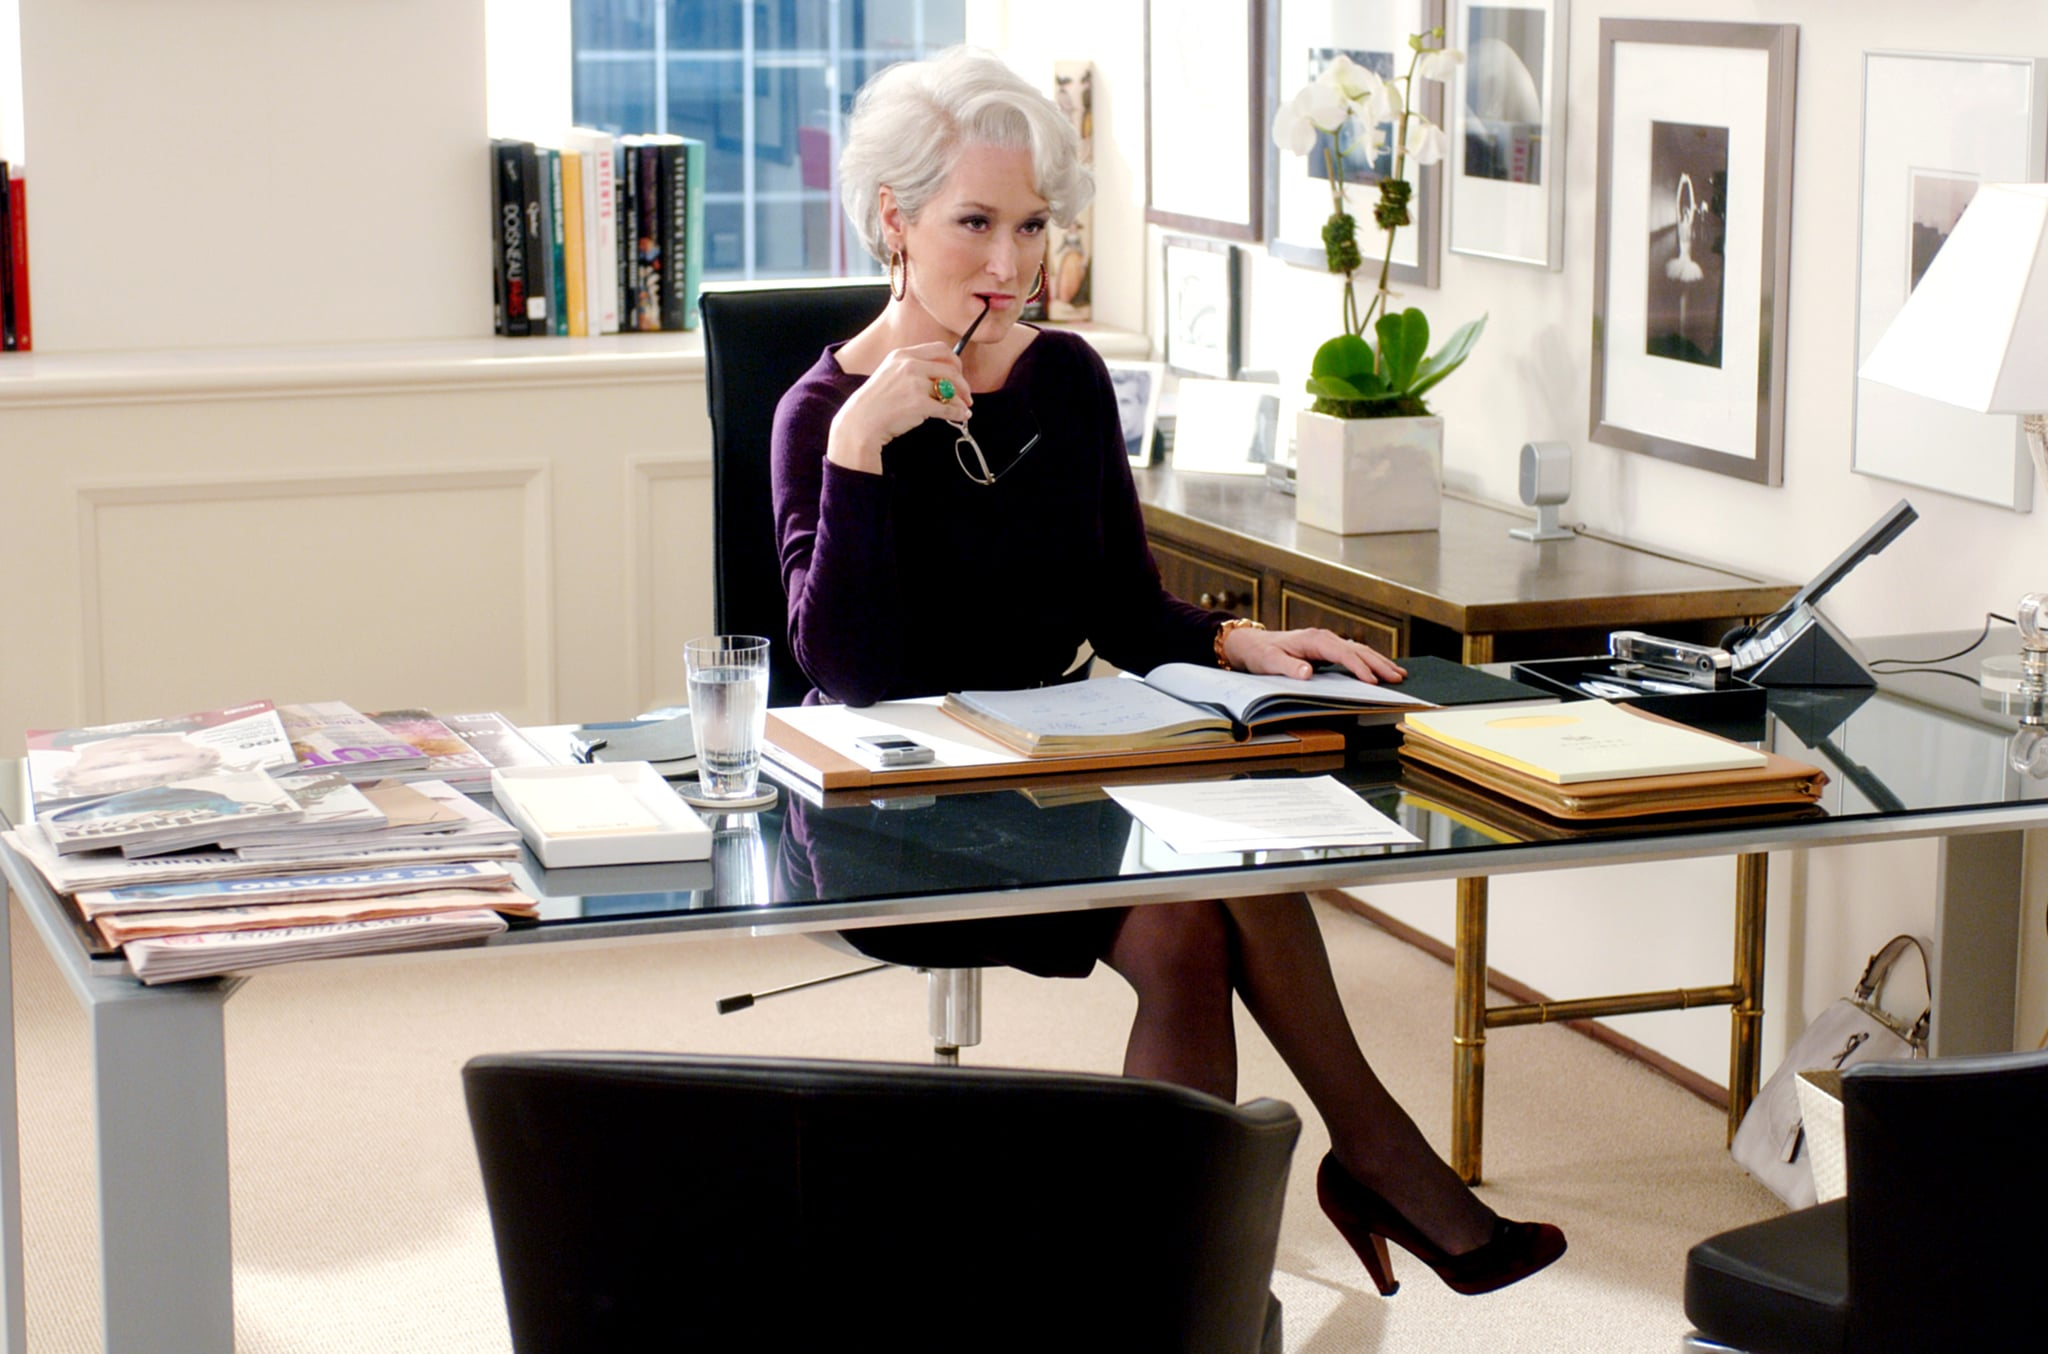 THE DEVIL WEARS PRADA, Meryl Streep, 2006, TM & Copyright (c) 20th Century Fox Film Corp. All rights reserved.